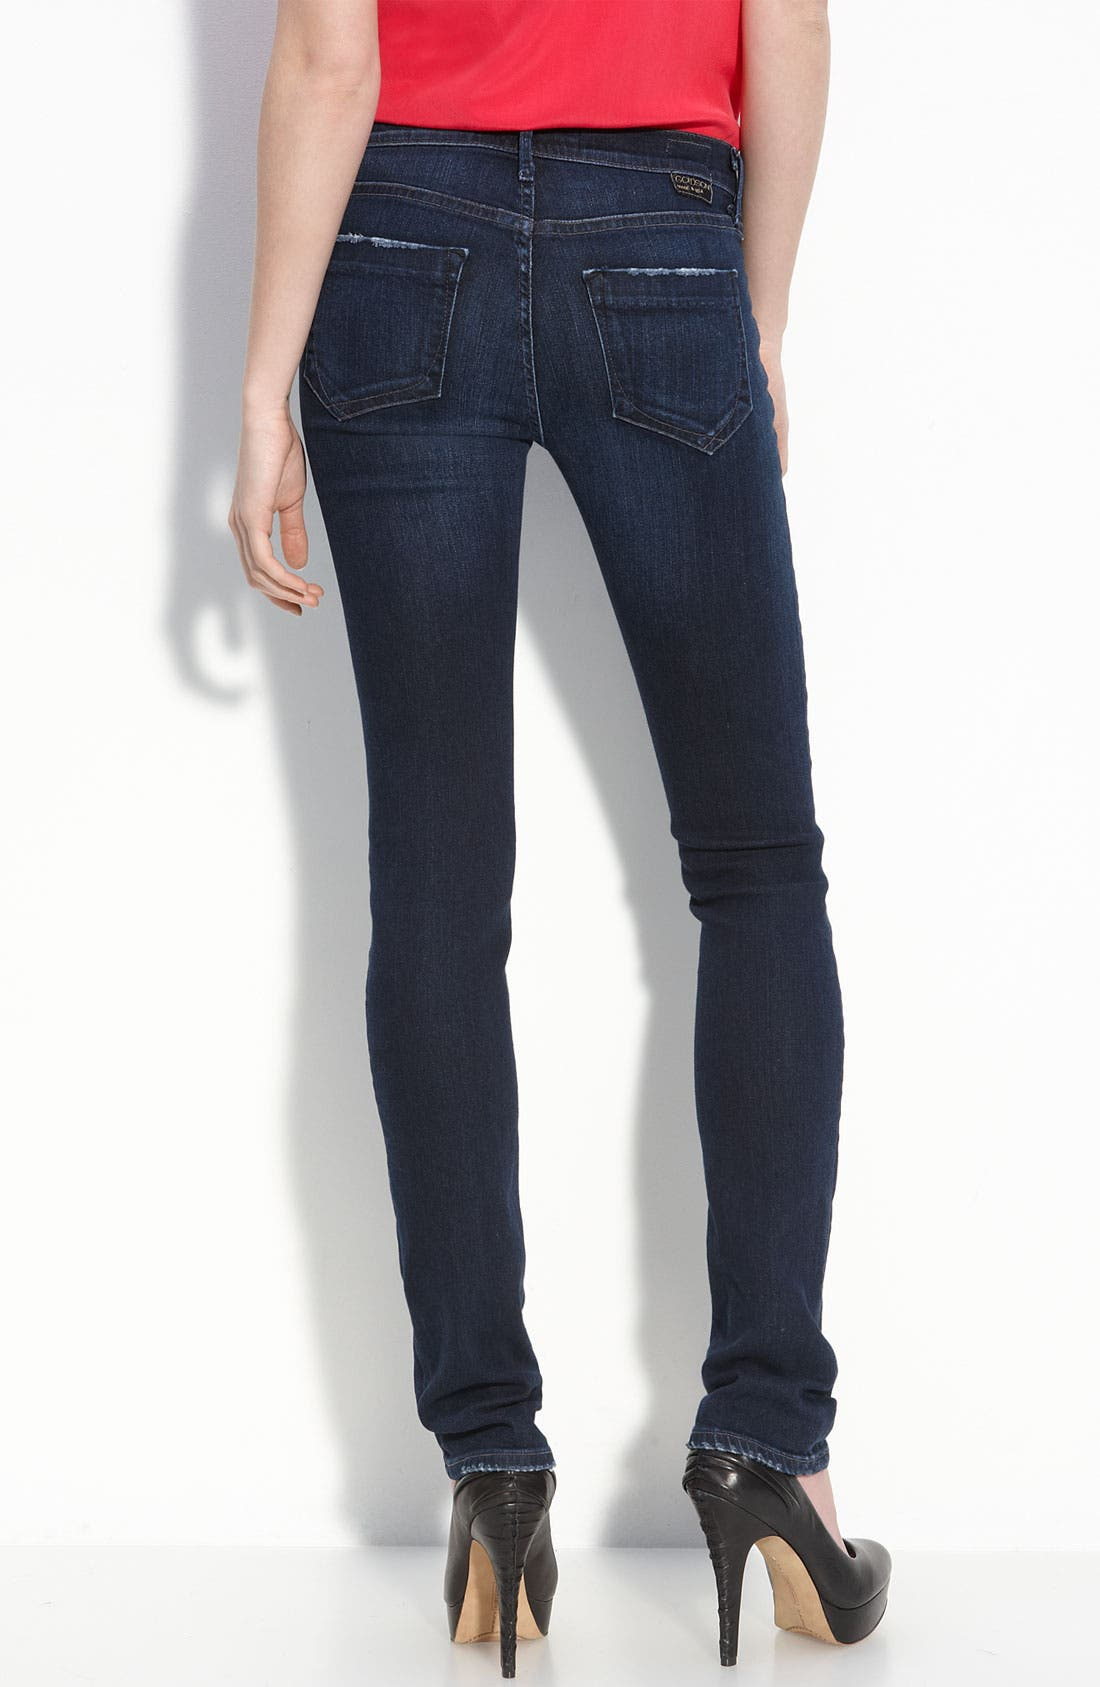 Alternate Image 1 Selected - Goldsign 'Misfit' Straight Leg Stretch Jeans (Motif Wash)